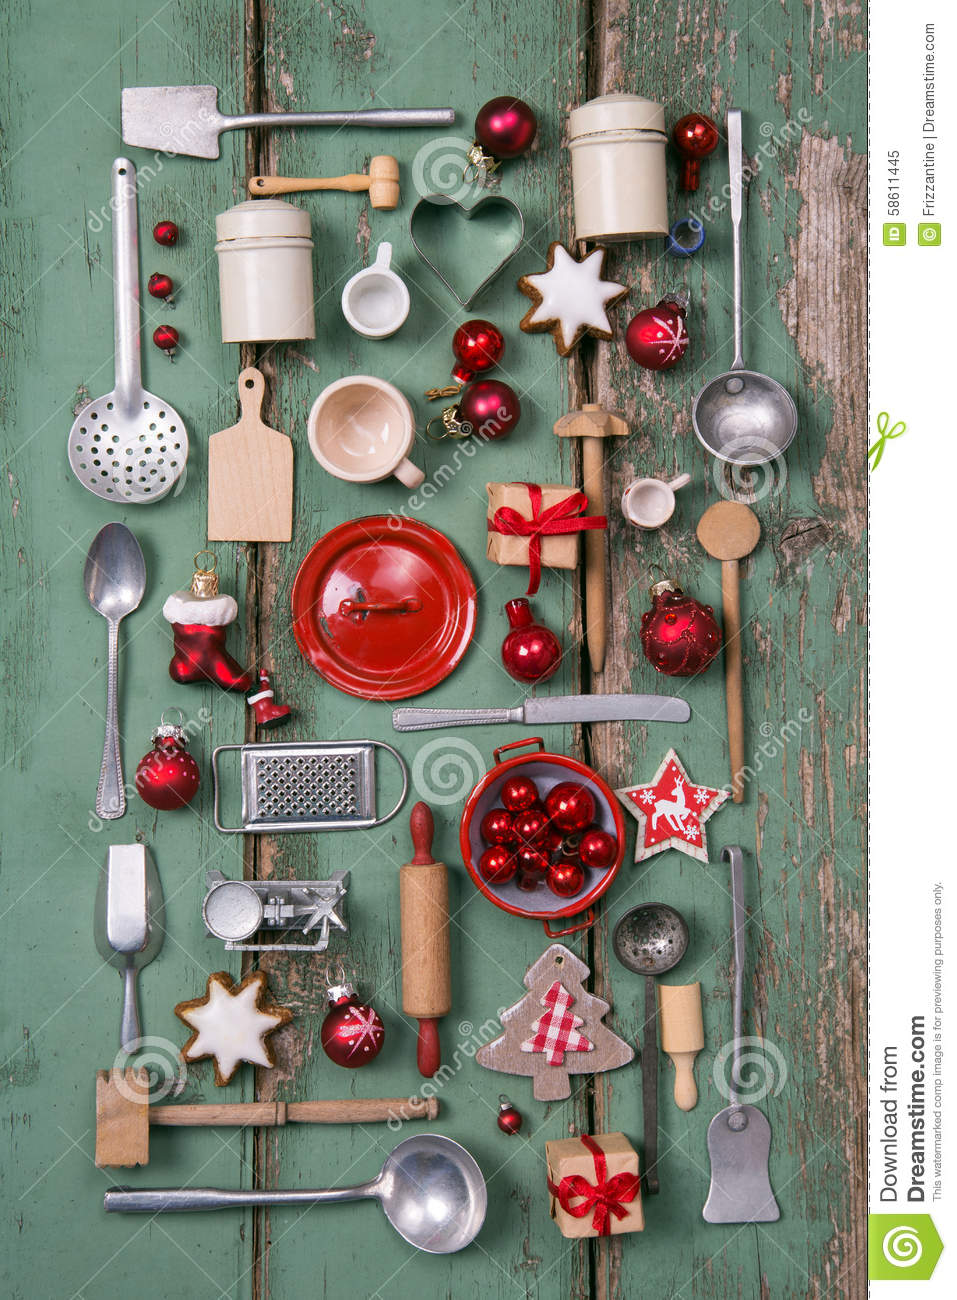 Vintage Country Kitchen Green Country Style Or Wooden Vintage Christmas Background For Kitchen